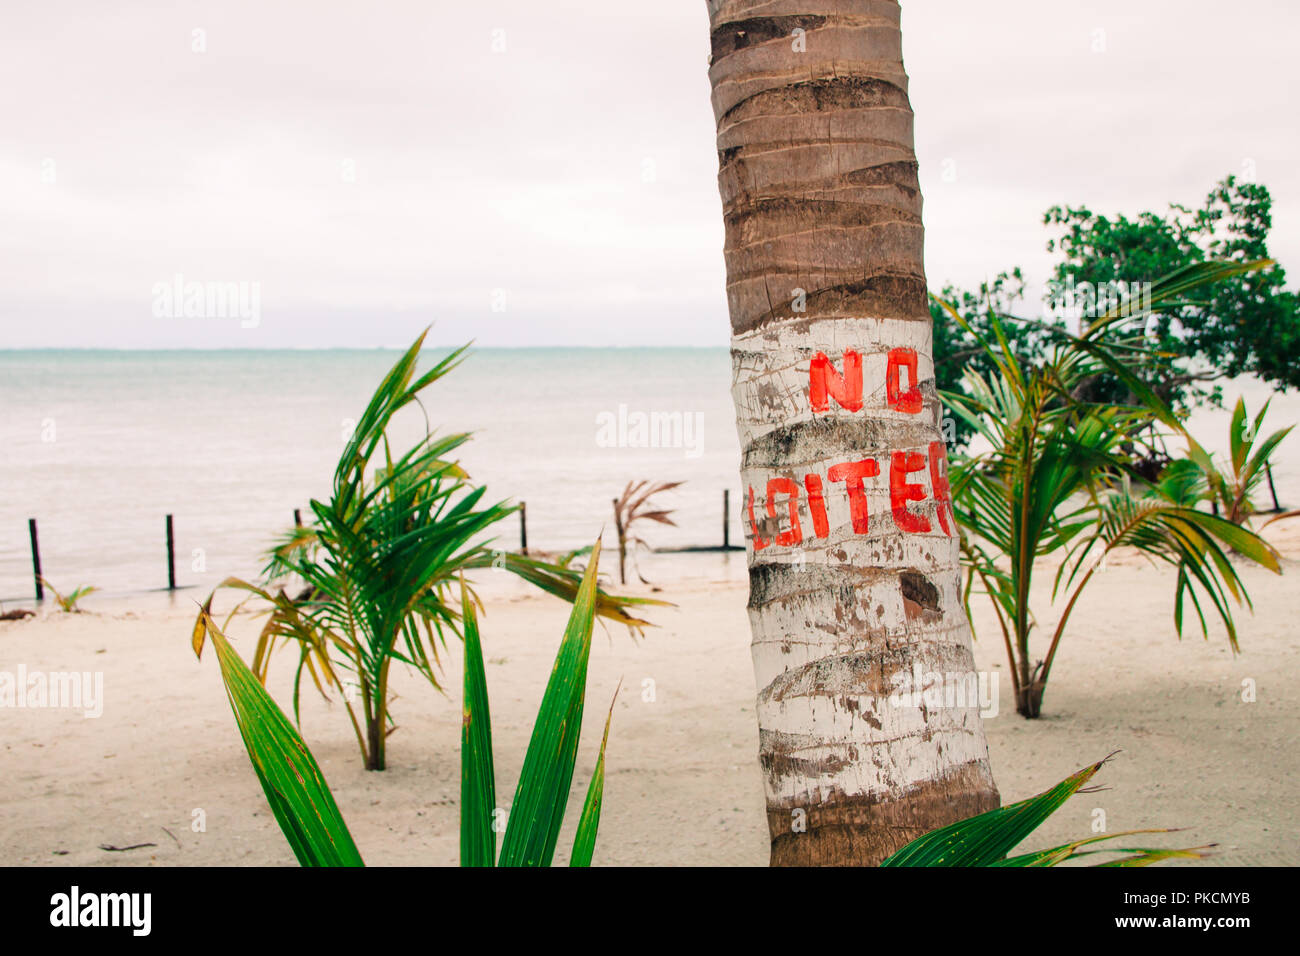 No Loiter Sign on Palm Tree and Overcast Caribbean Sea - Stock Image